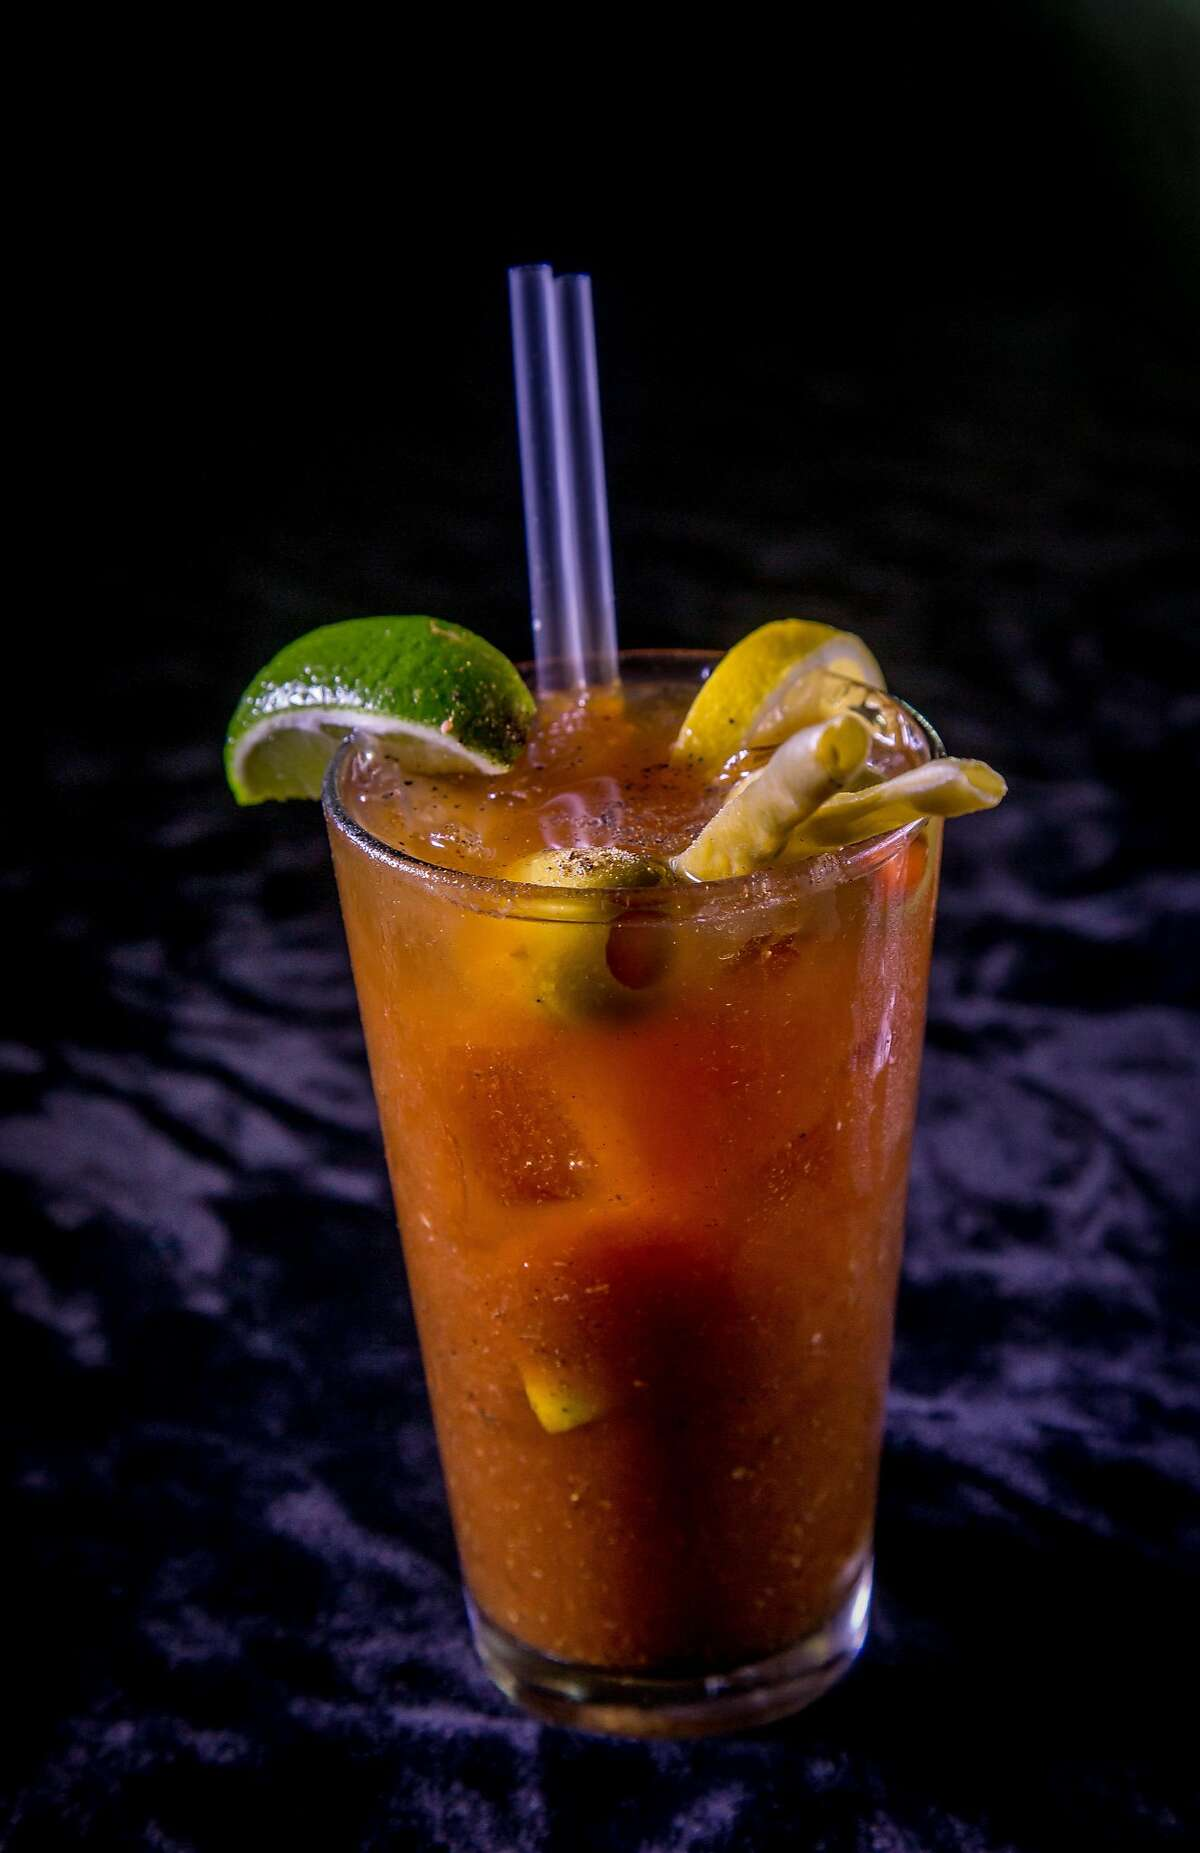 The Zeitgeist Bloody Mary in San Francisco, Calif. is seen on December 20th, 2016.